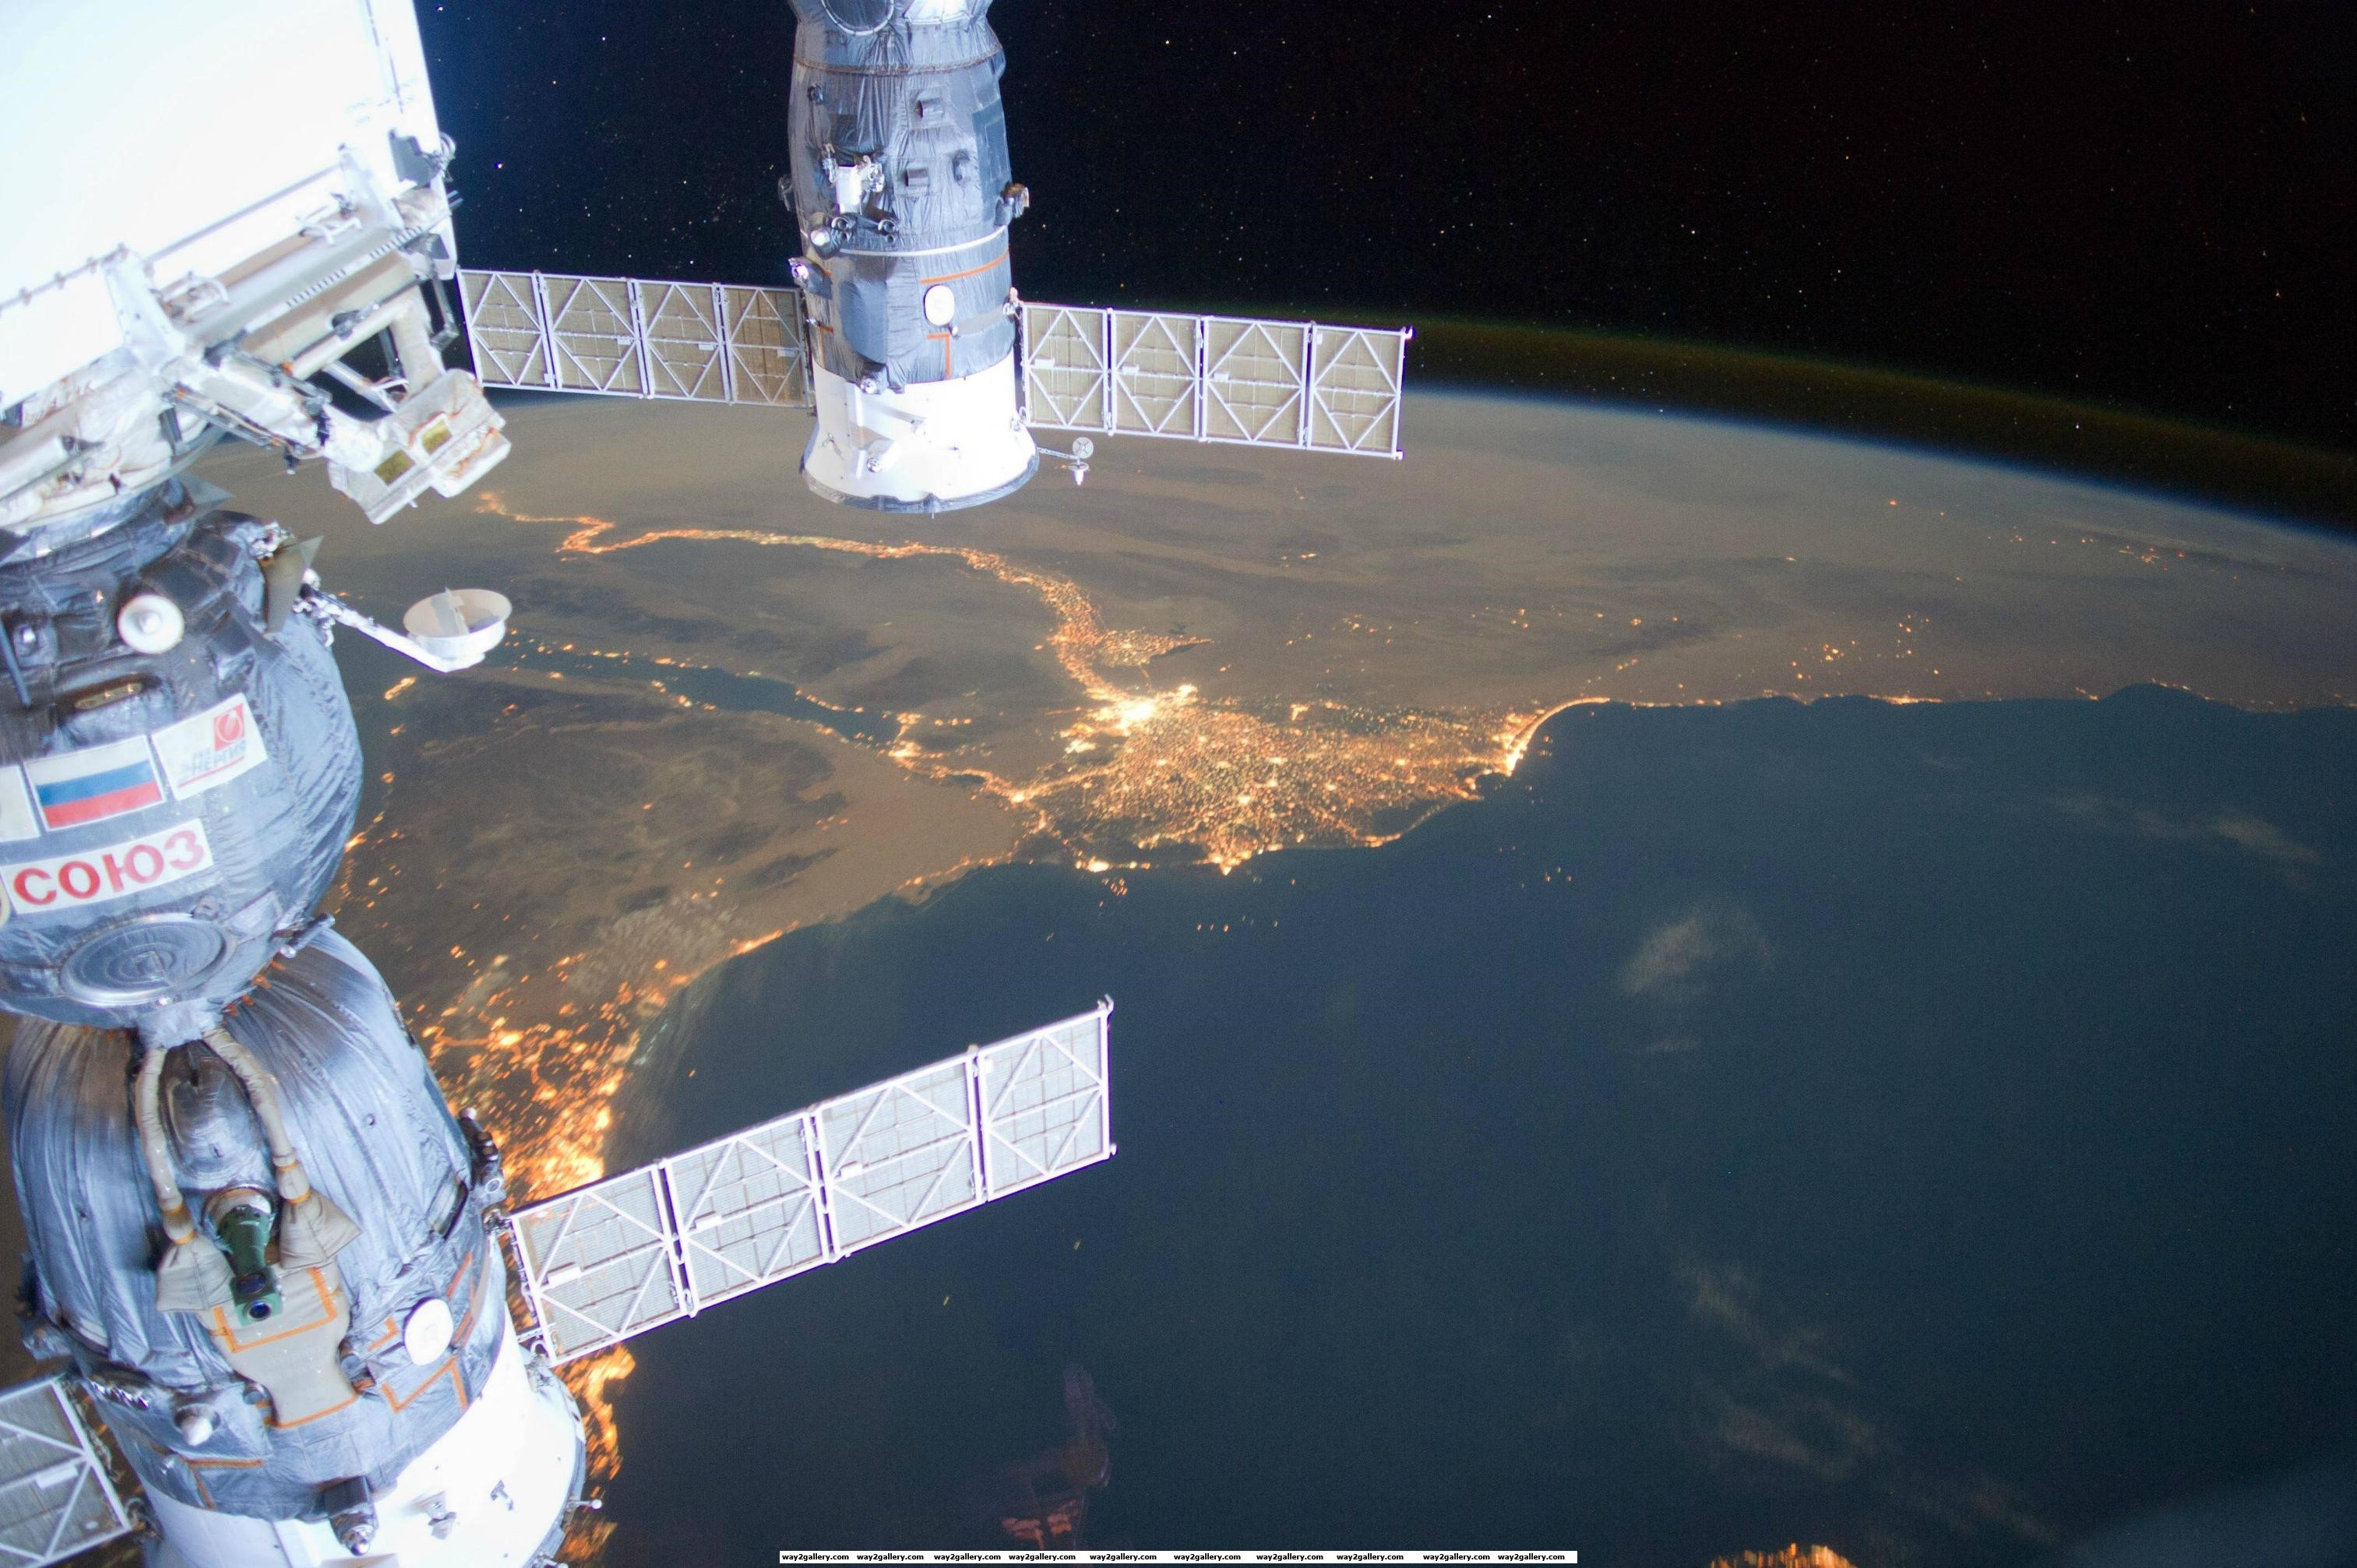 Awesome image of egypt as seen from the international space station